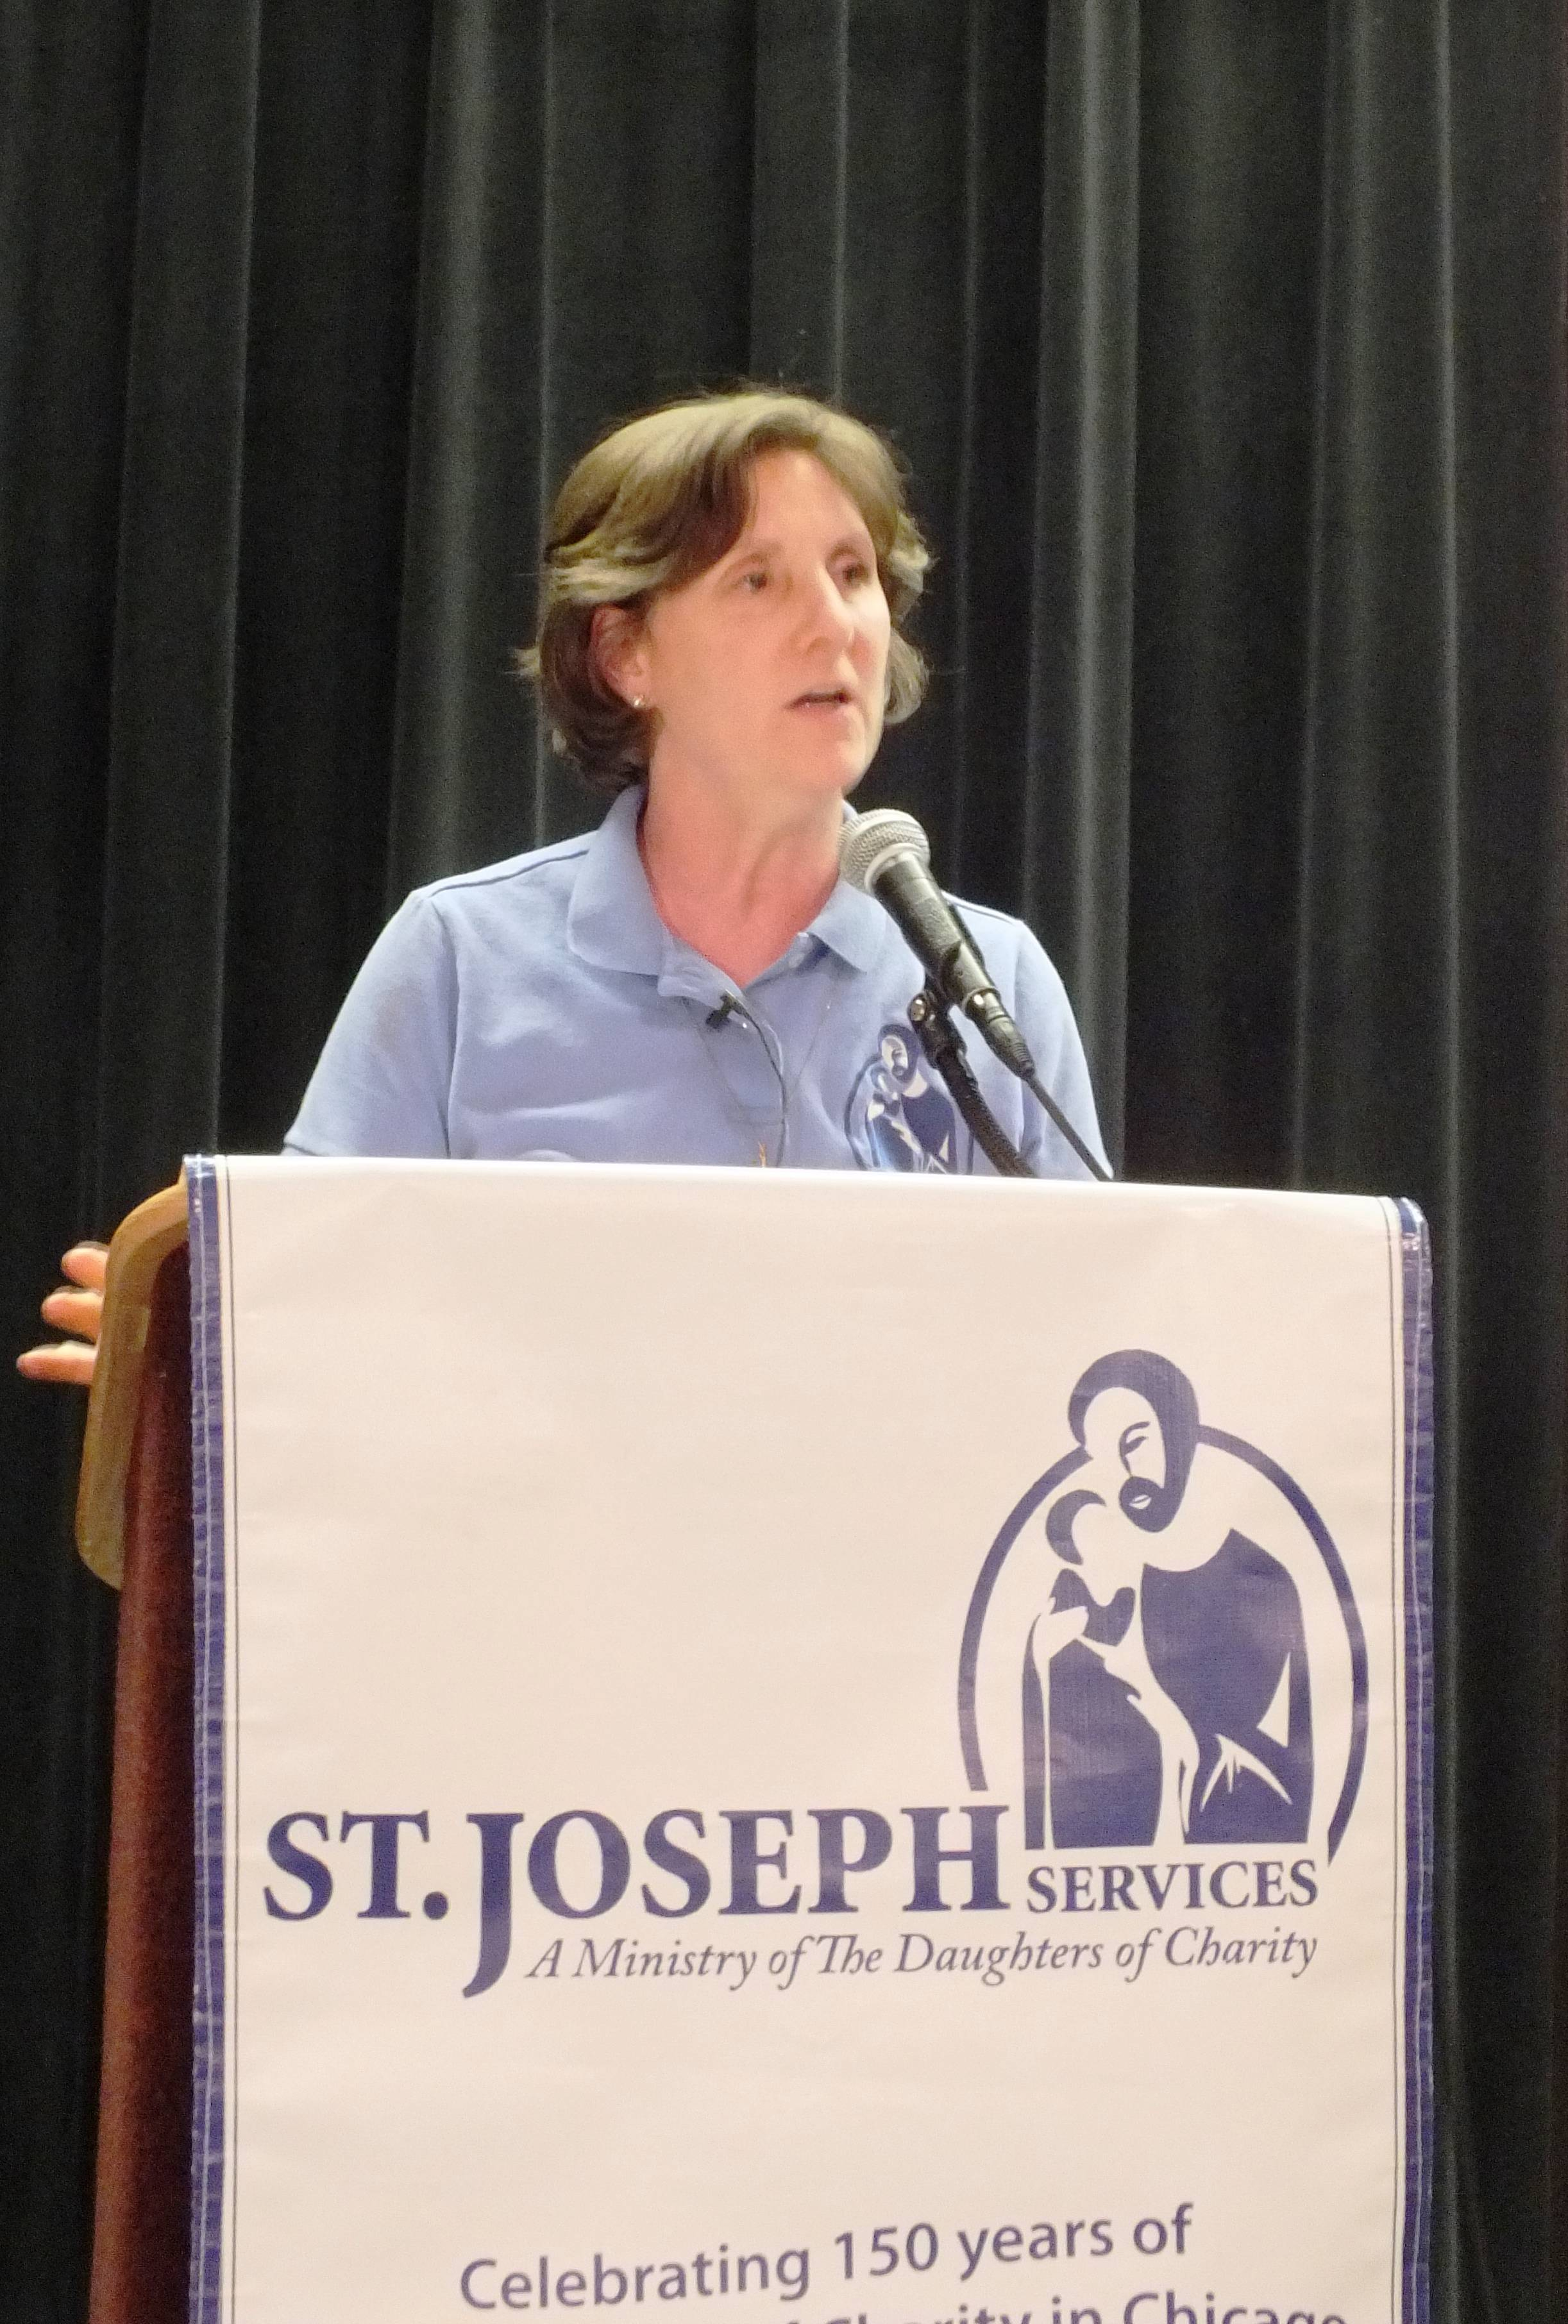 St. Joseph Services executive director Lisa Sullivan is grateful to Accretive Health for its philanthropy.